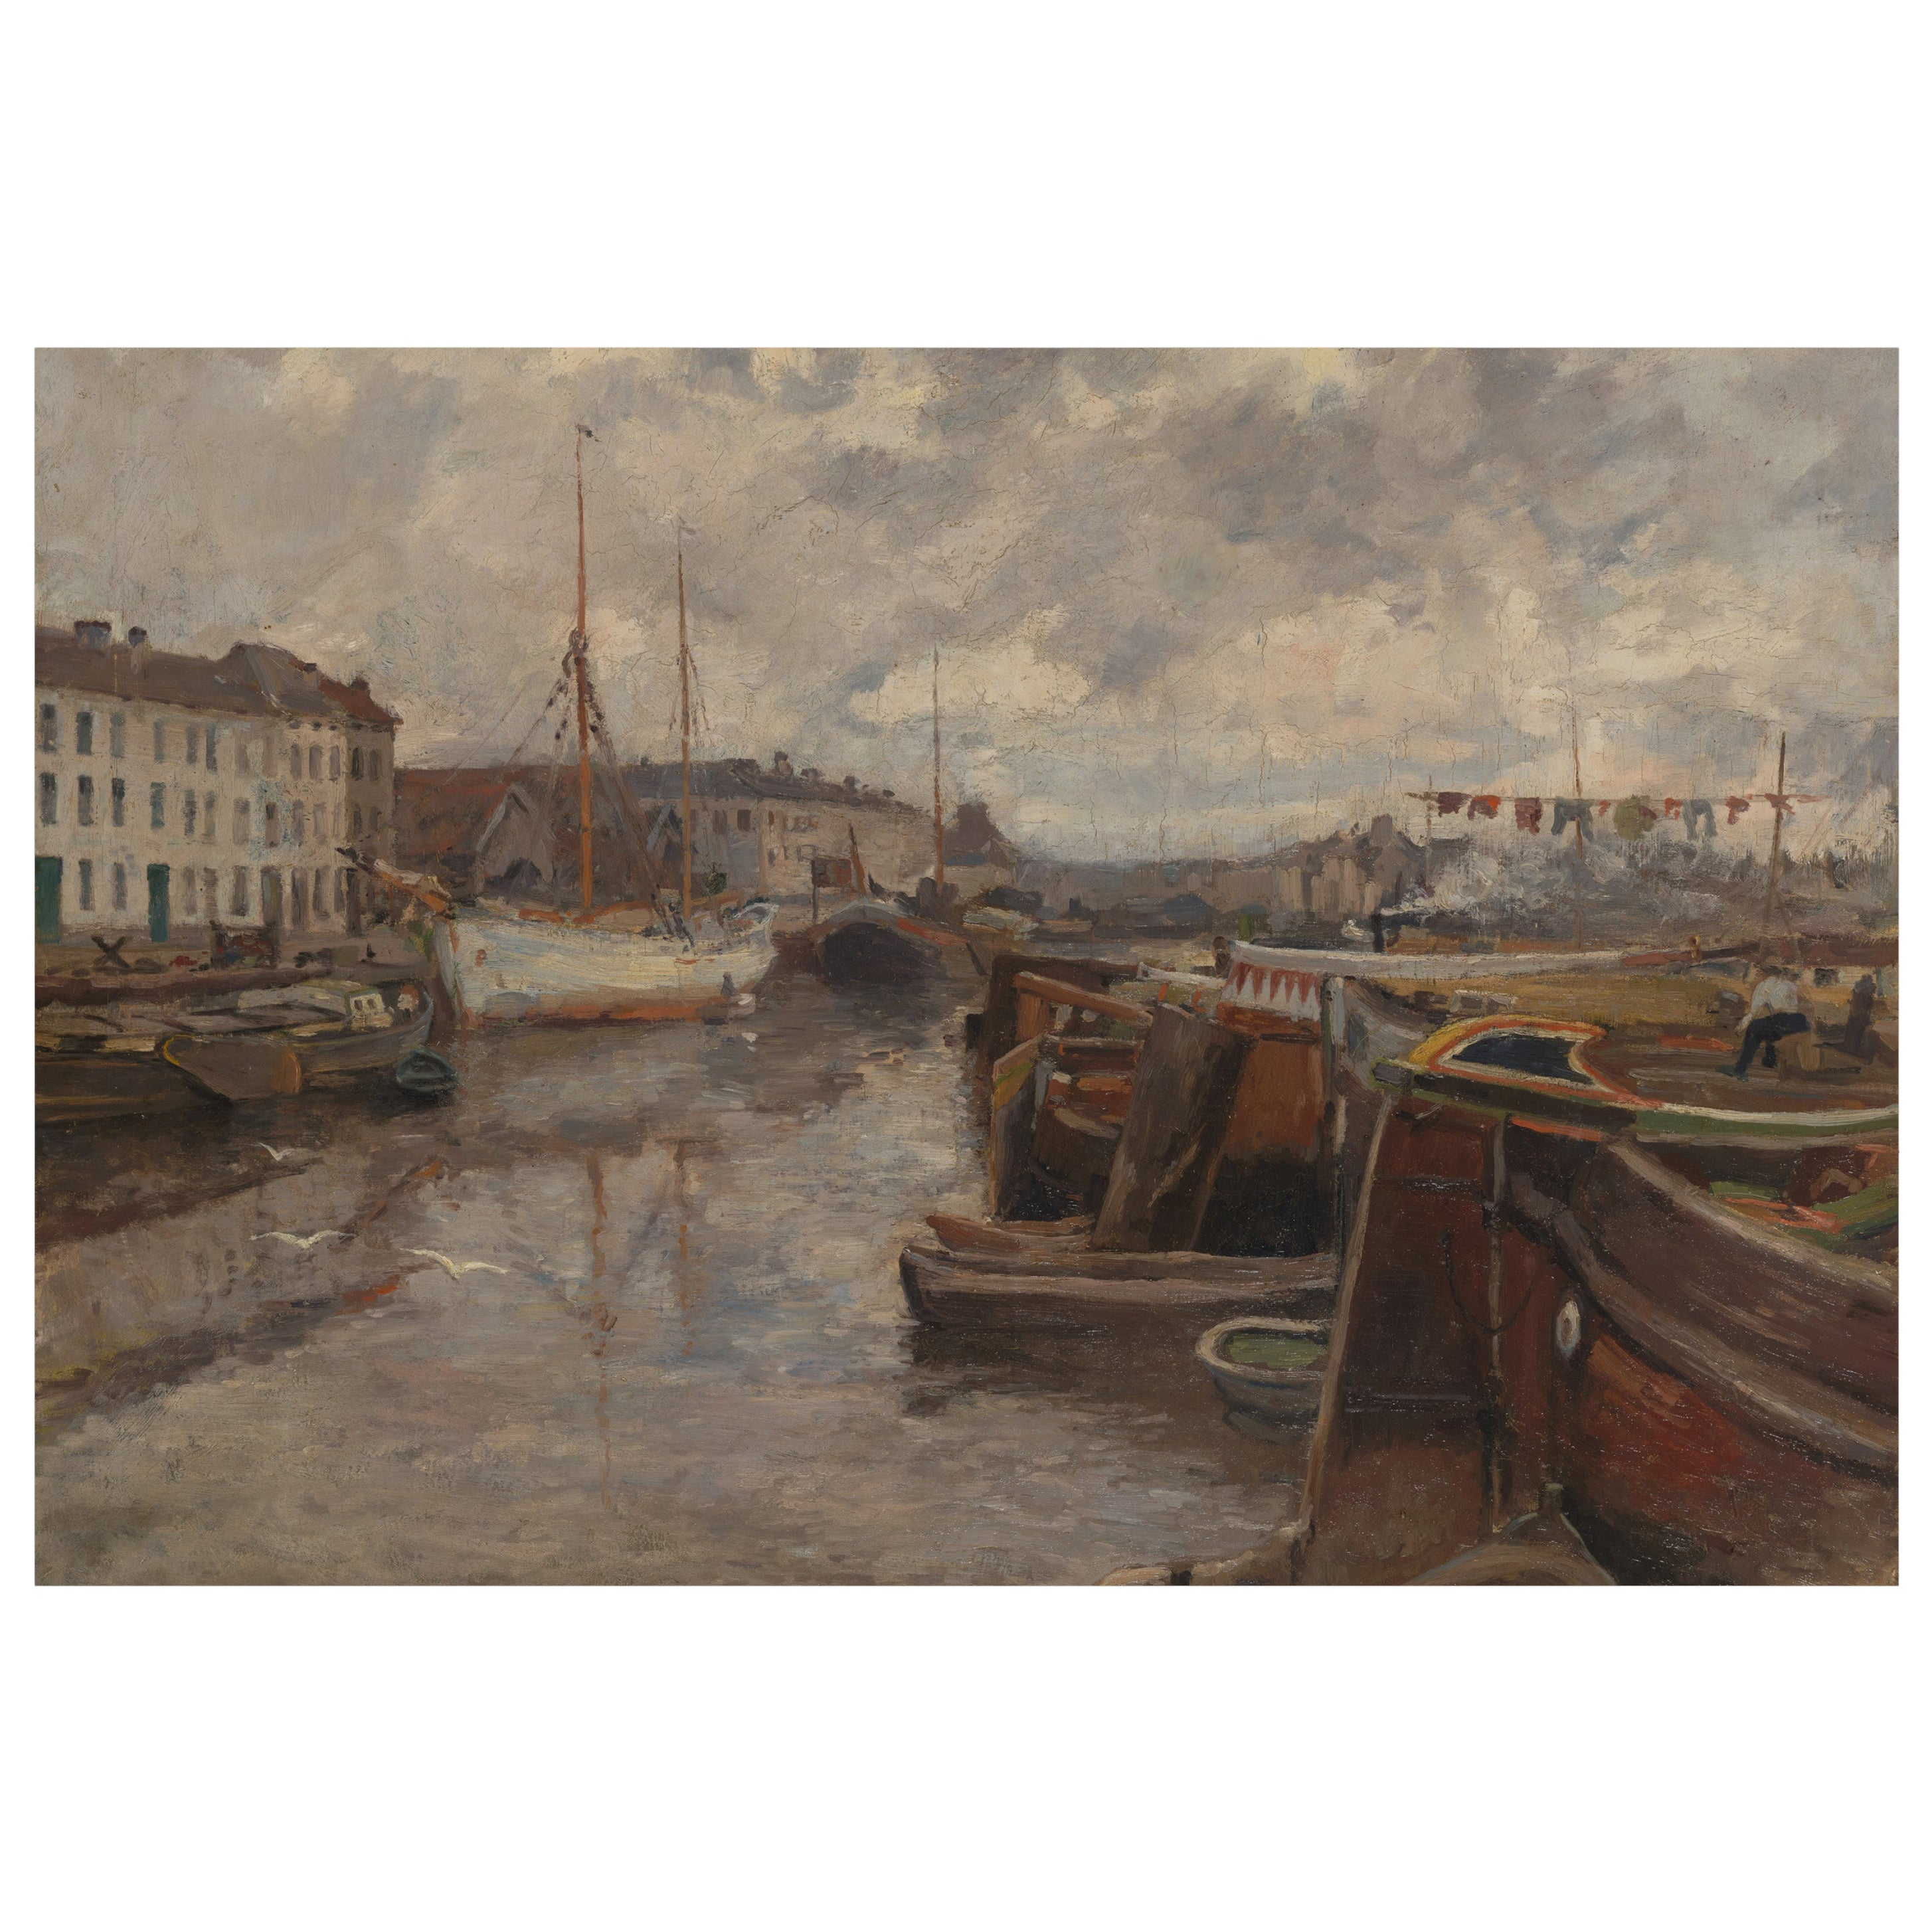 Gaston Haustraete, Harbor View, Oil on Canvas, Framed and Signed